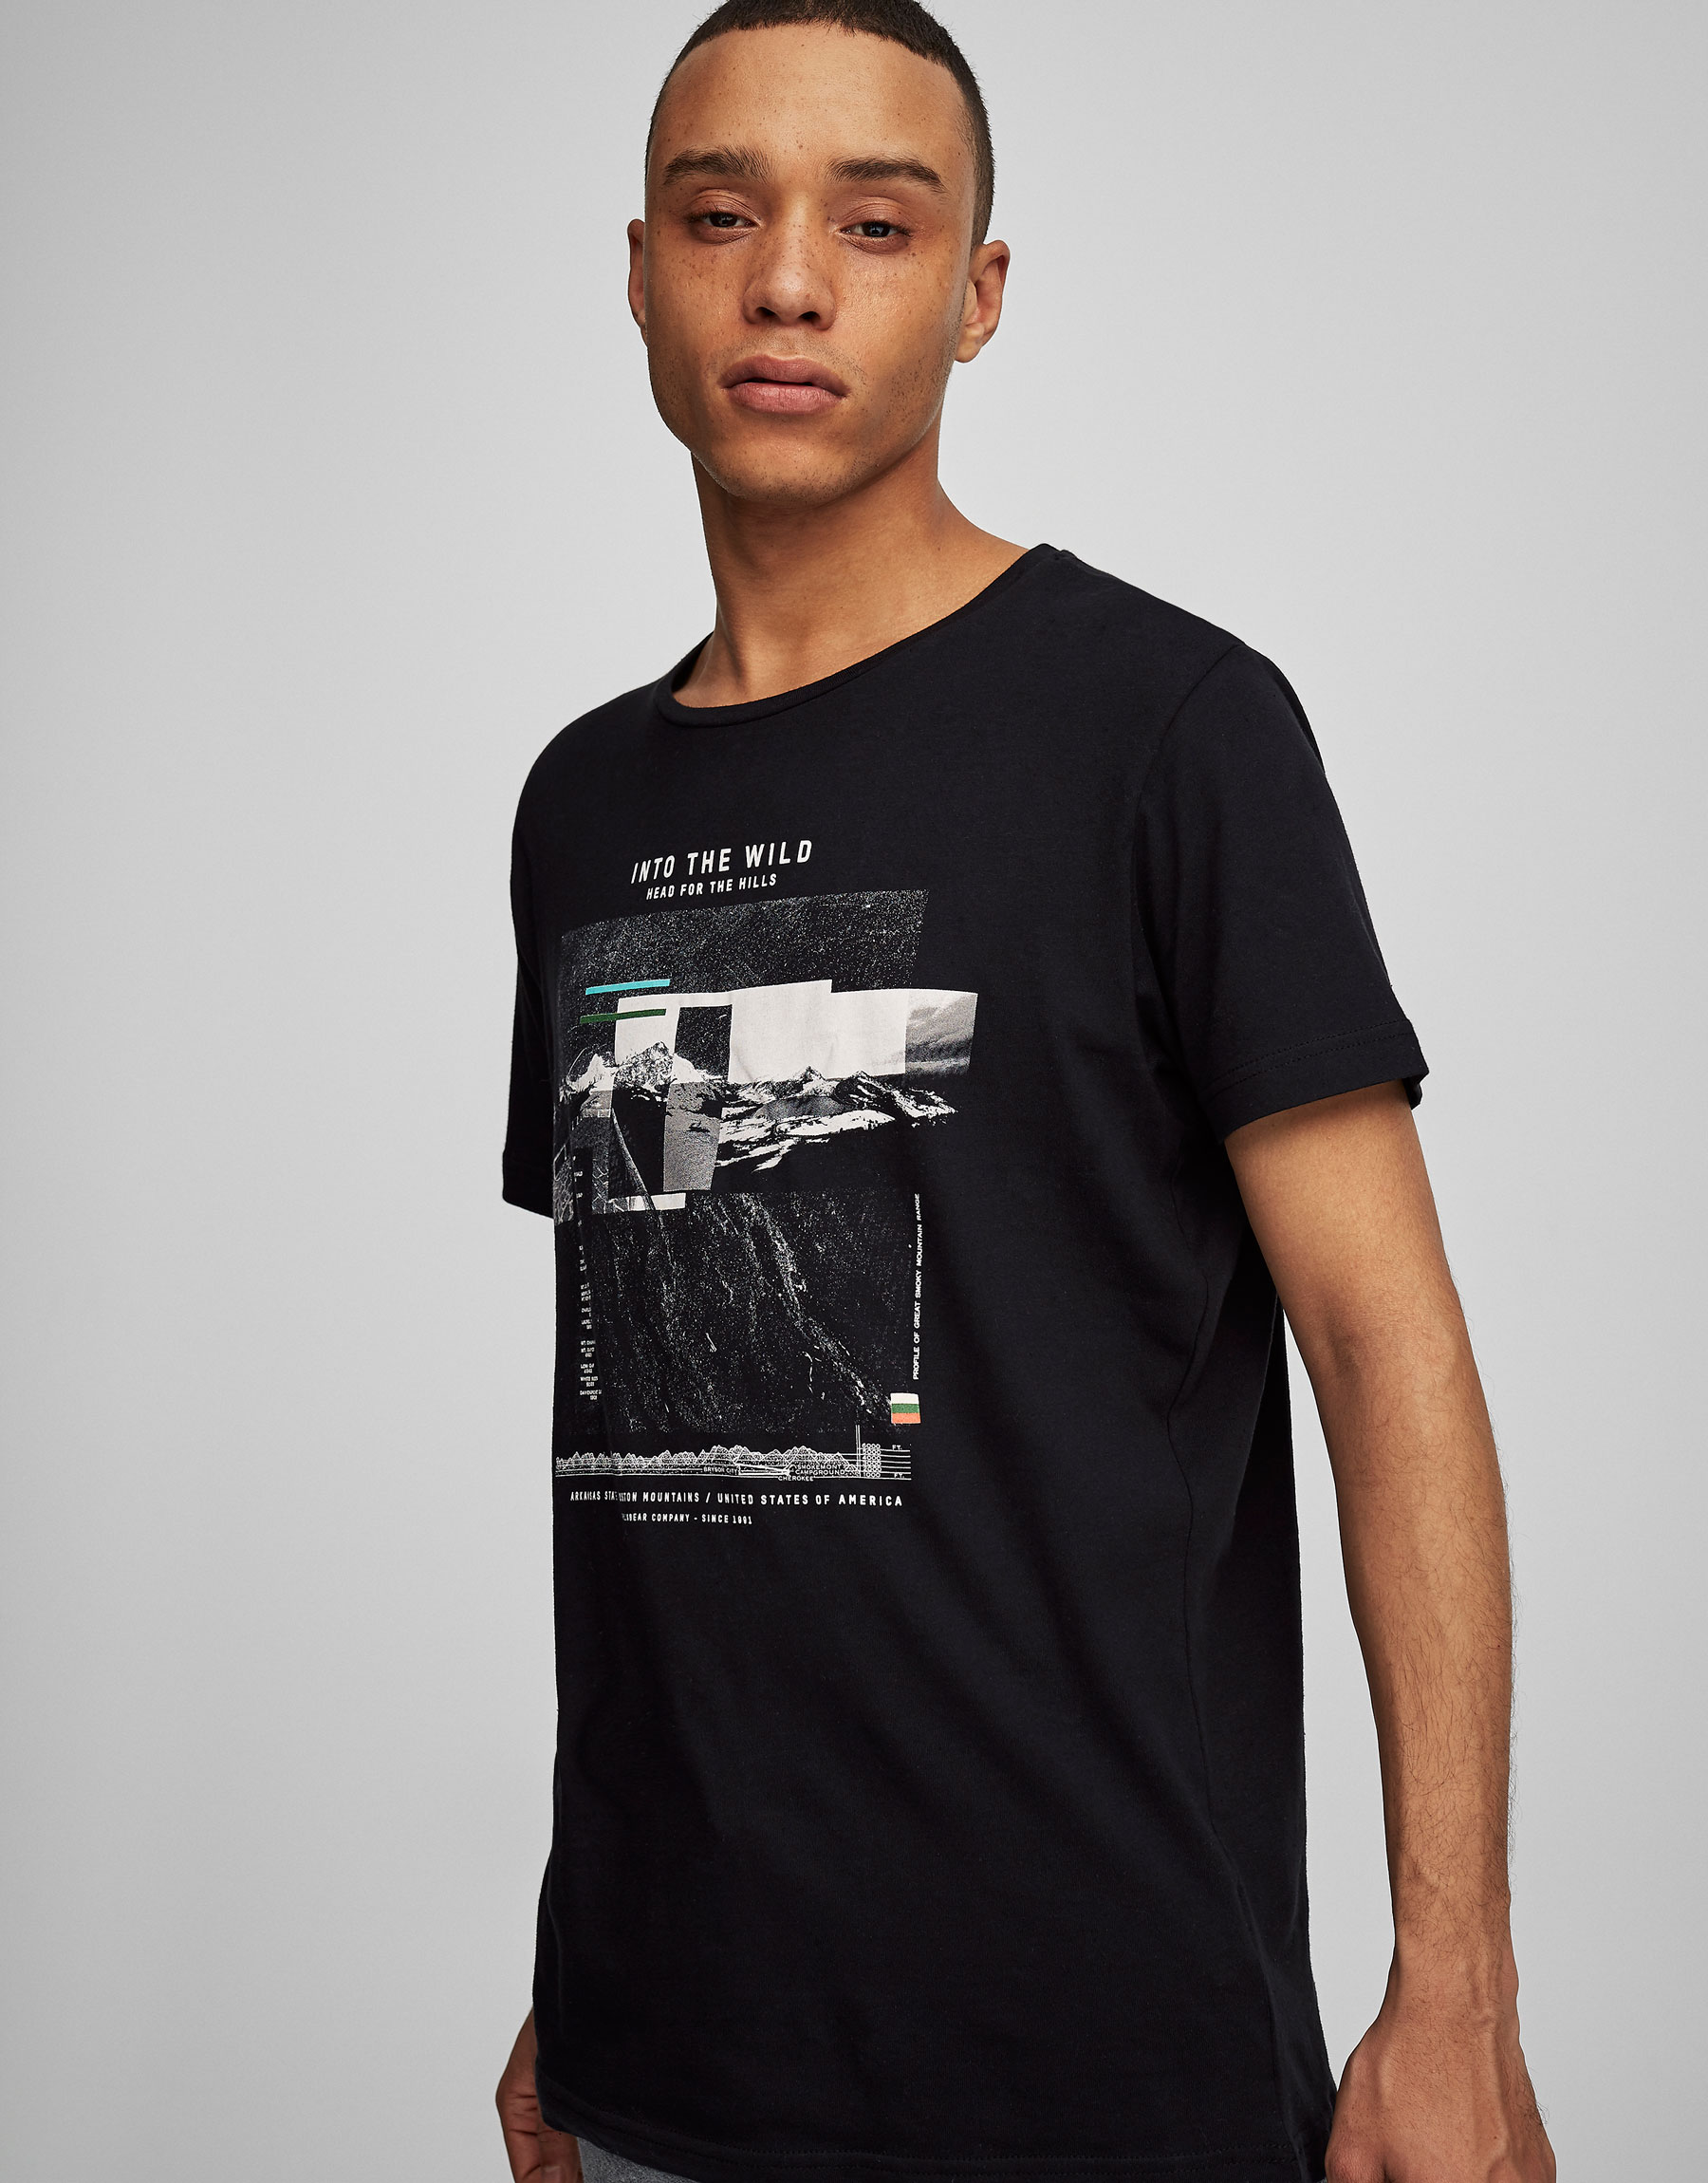 'Into the wild' print T-shirt